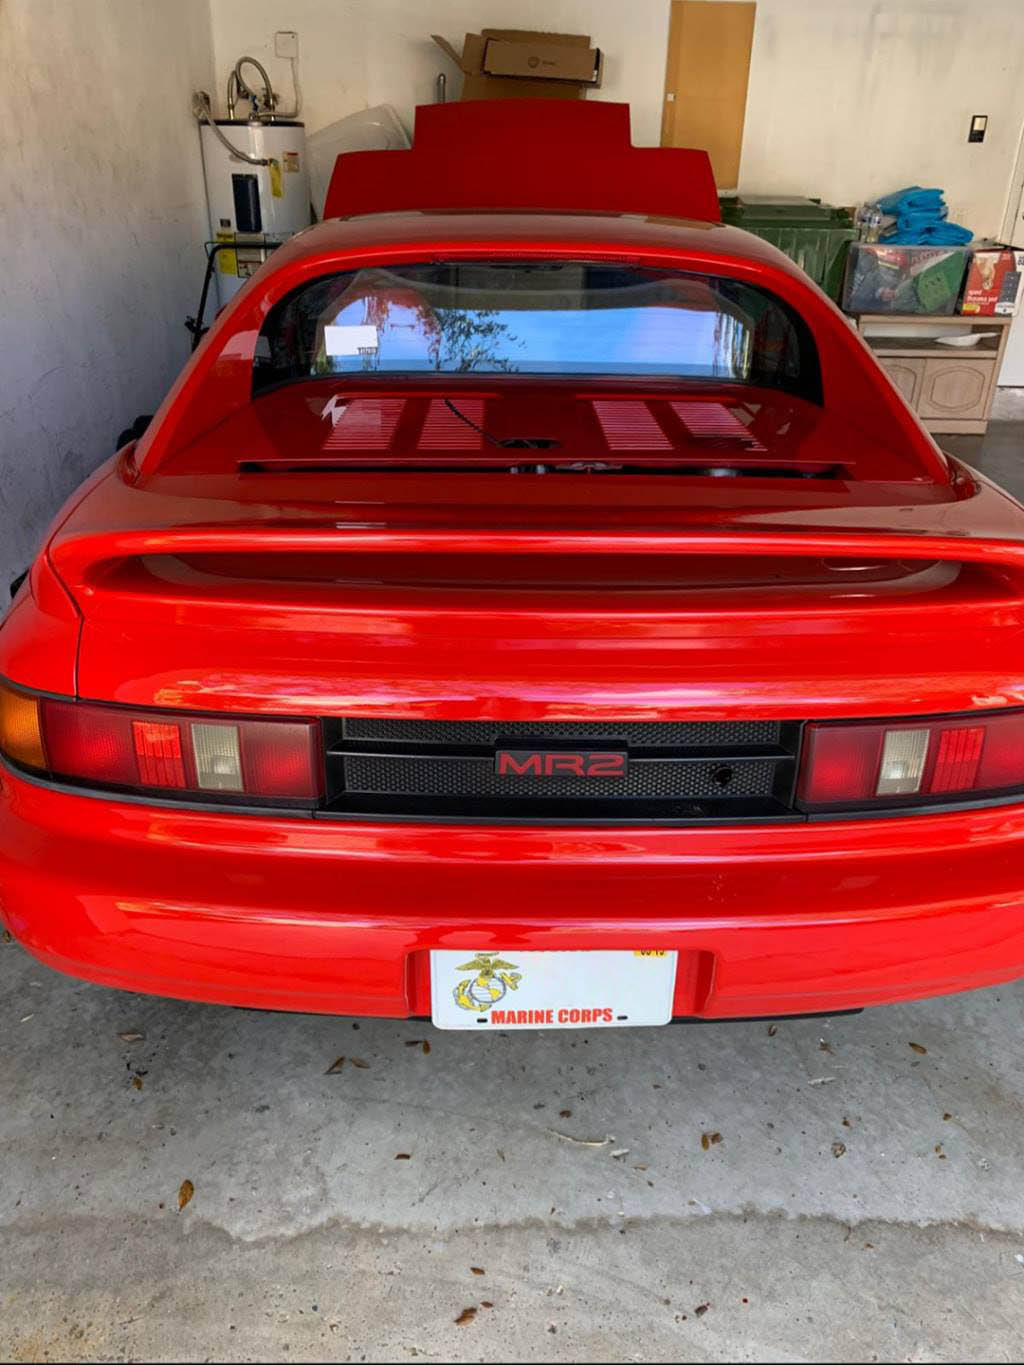 For Sale: 1991 Toyota MR2 with a 780 whp Turbo K20 Inline